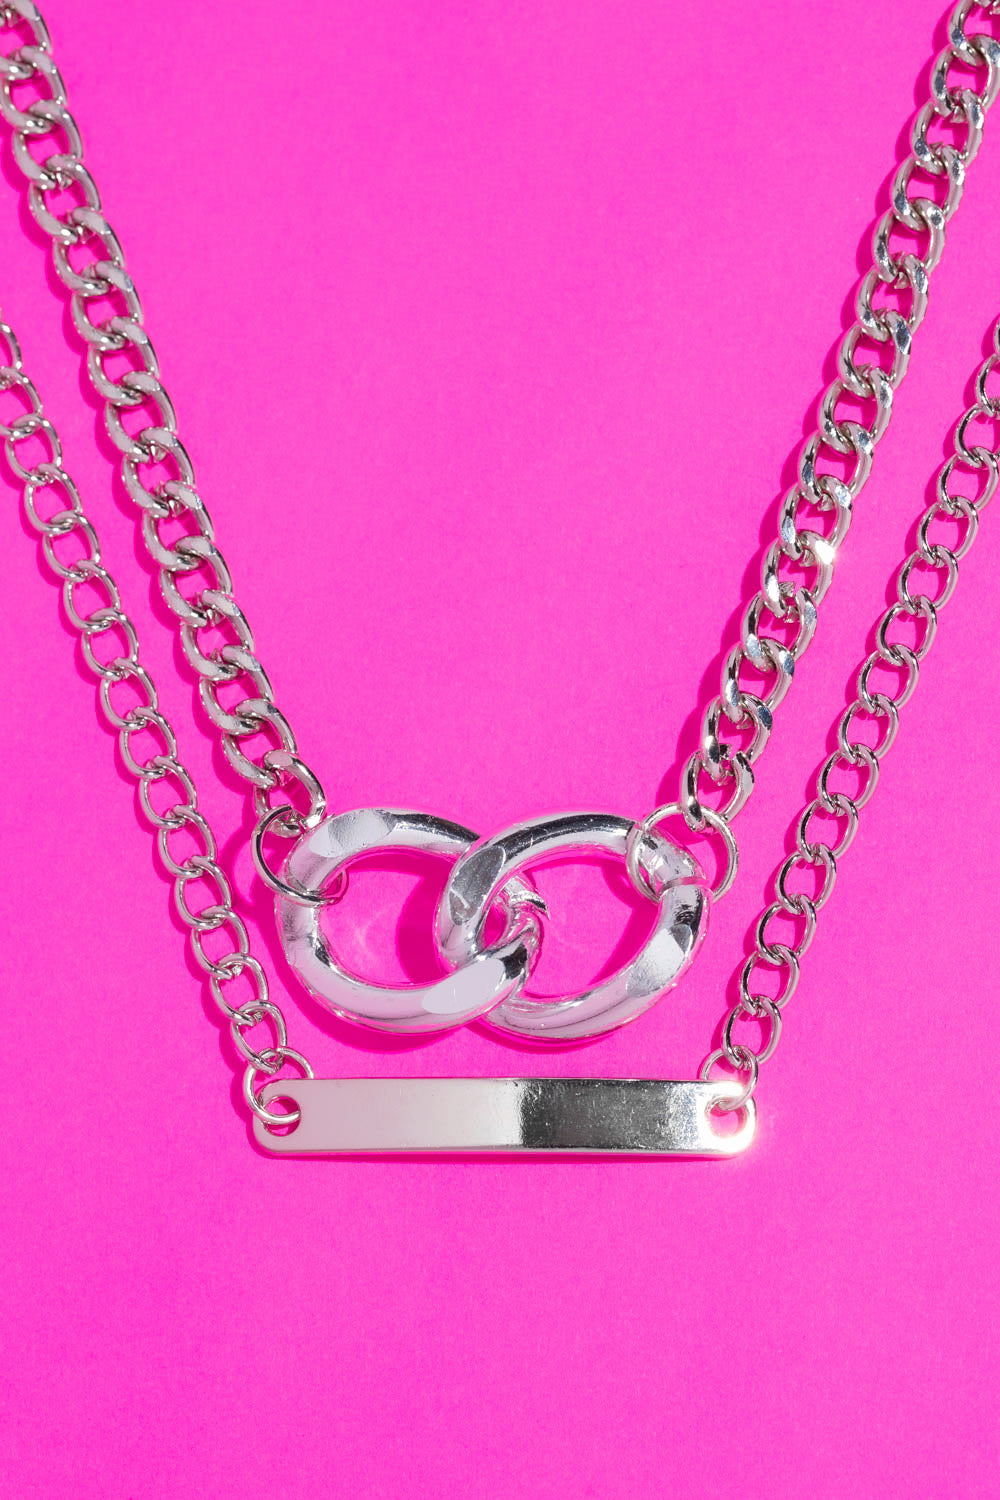 Type 4 Luxurious Links Necklace